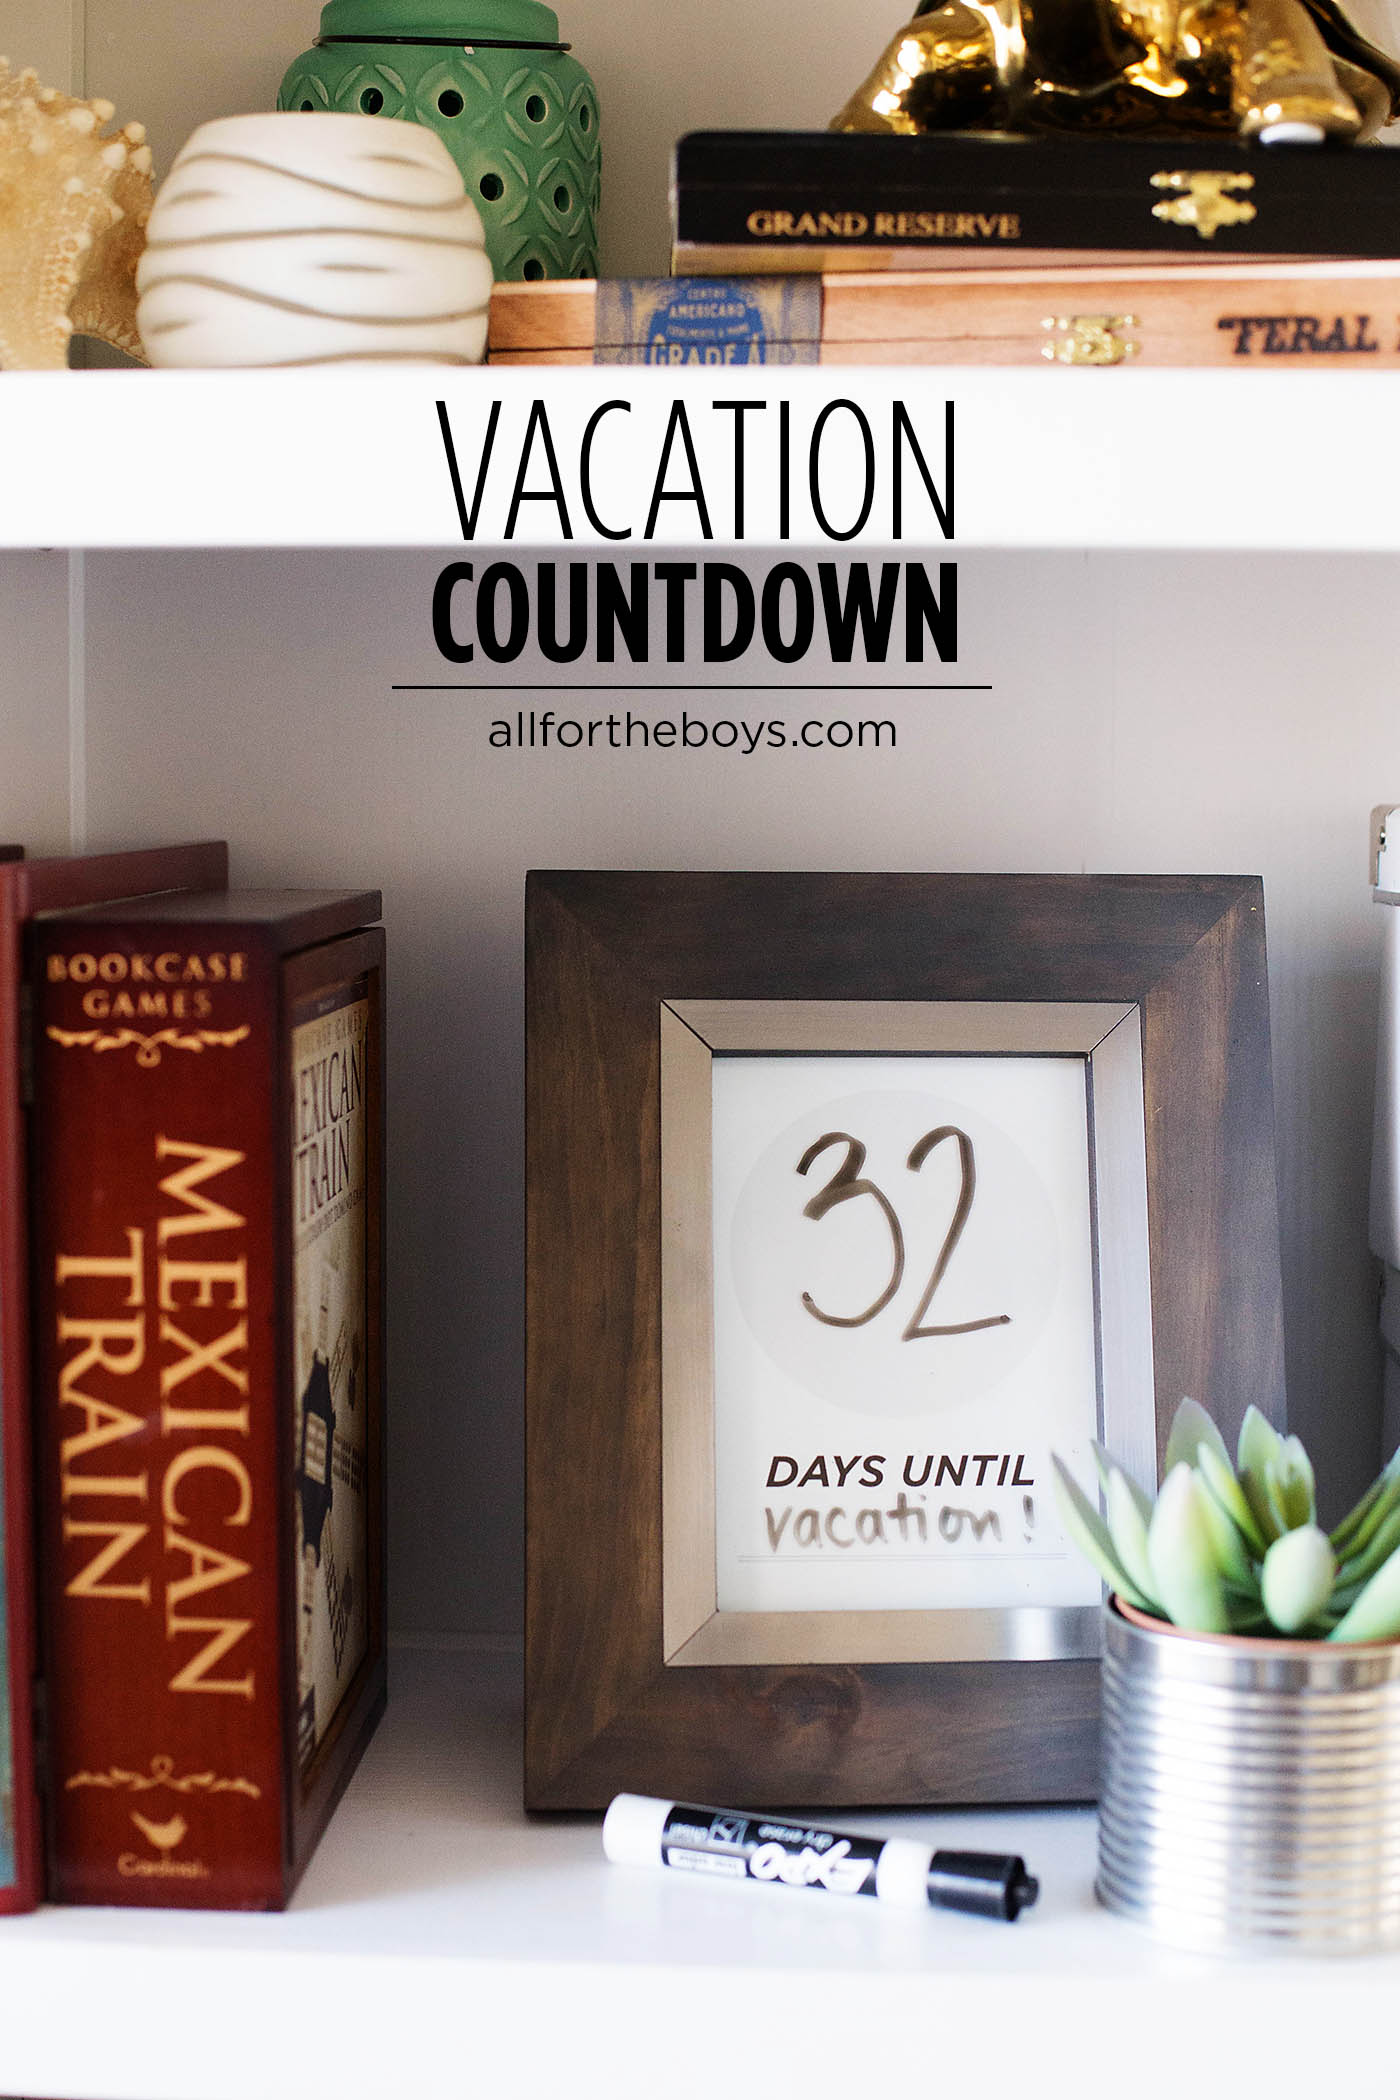 Printable vacation or travel countdown - perfect for your next adventure wherever it may lead you!